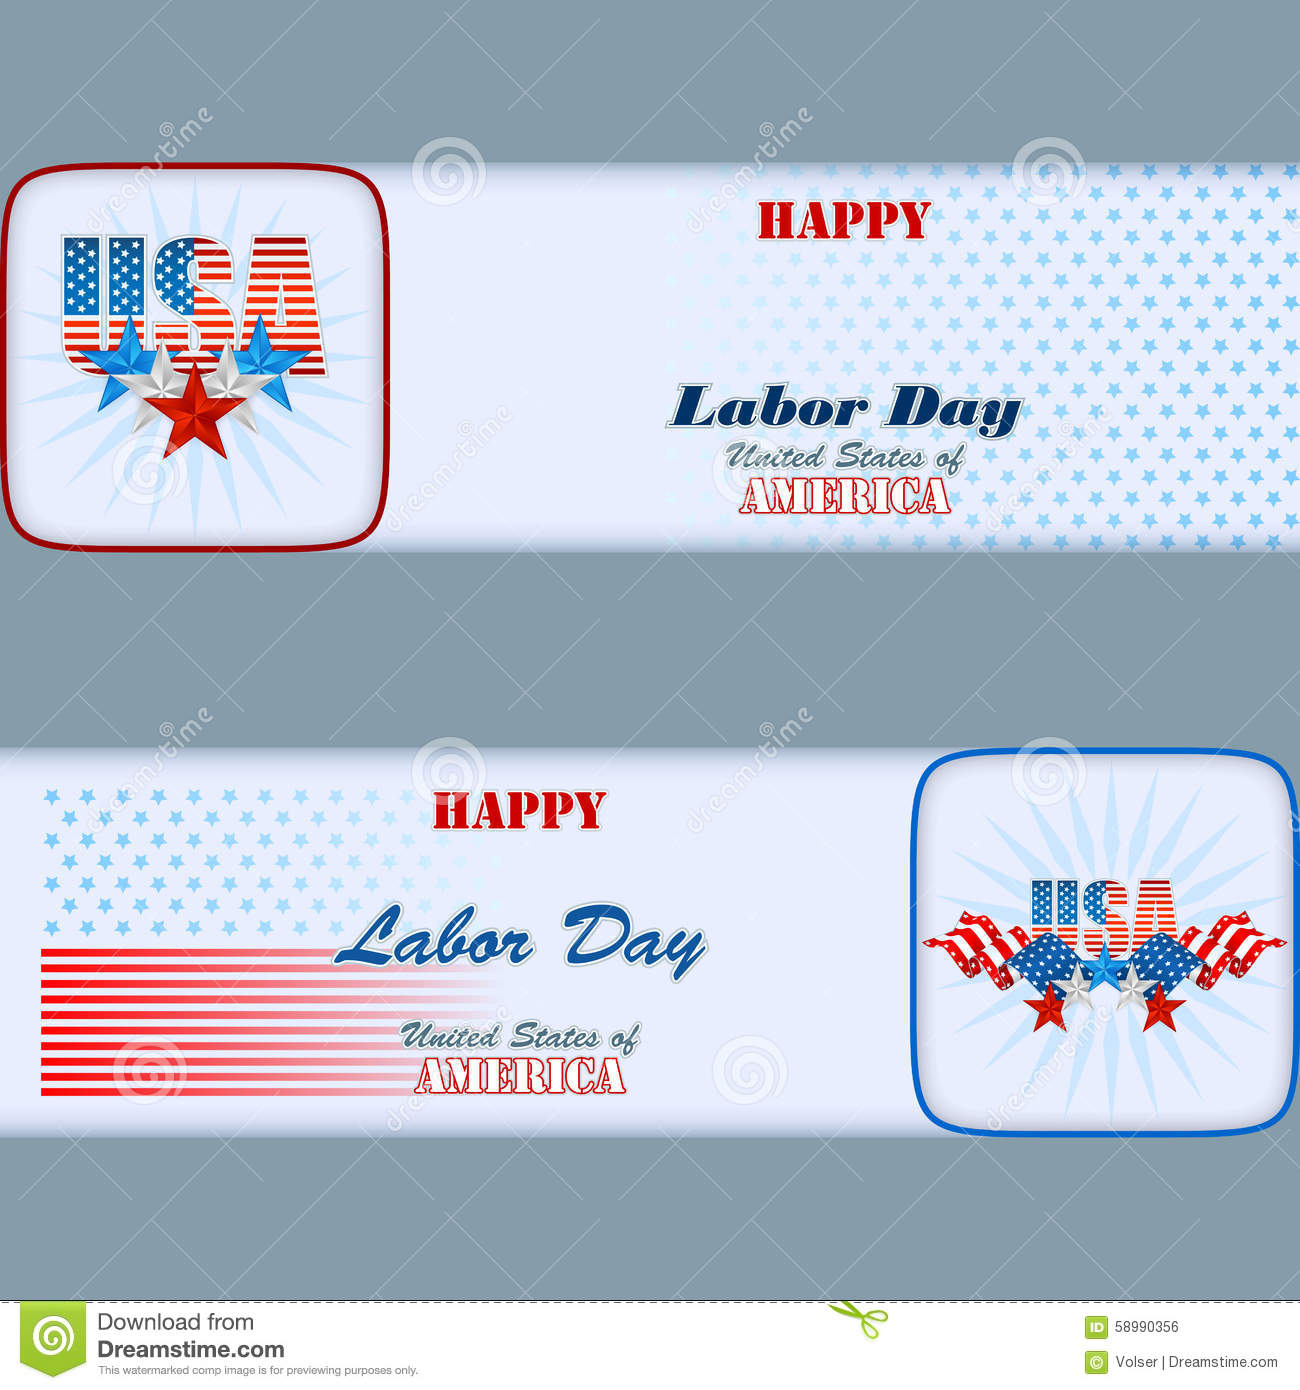 set of banners design with stars and flags for american labor day